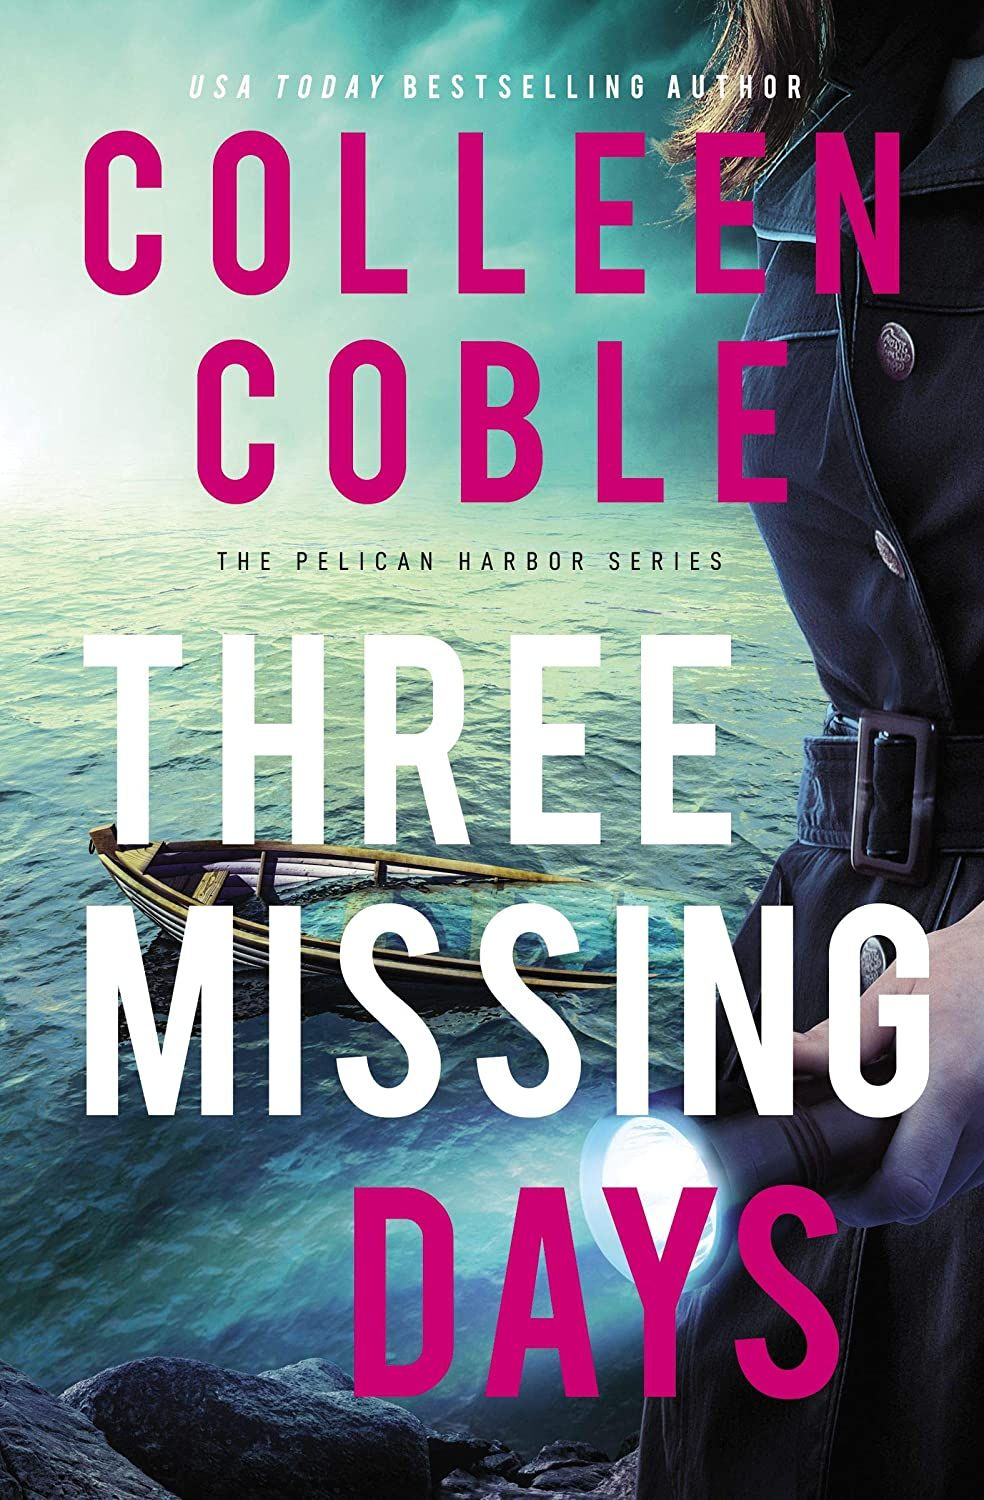 Best Christian Books 2021 April 2021 in 2020 | Christian fiction books, Colleen coble, Books